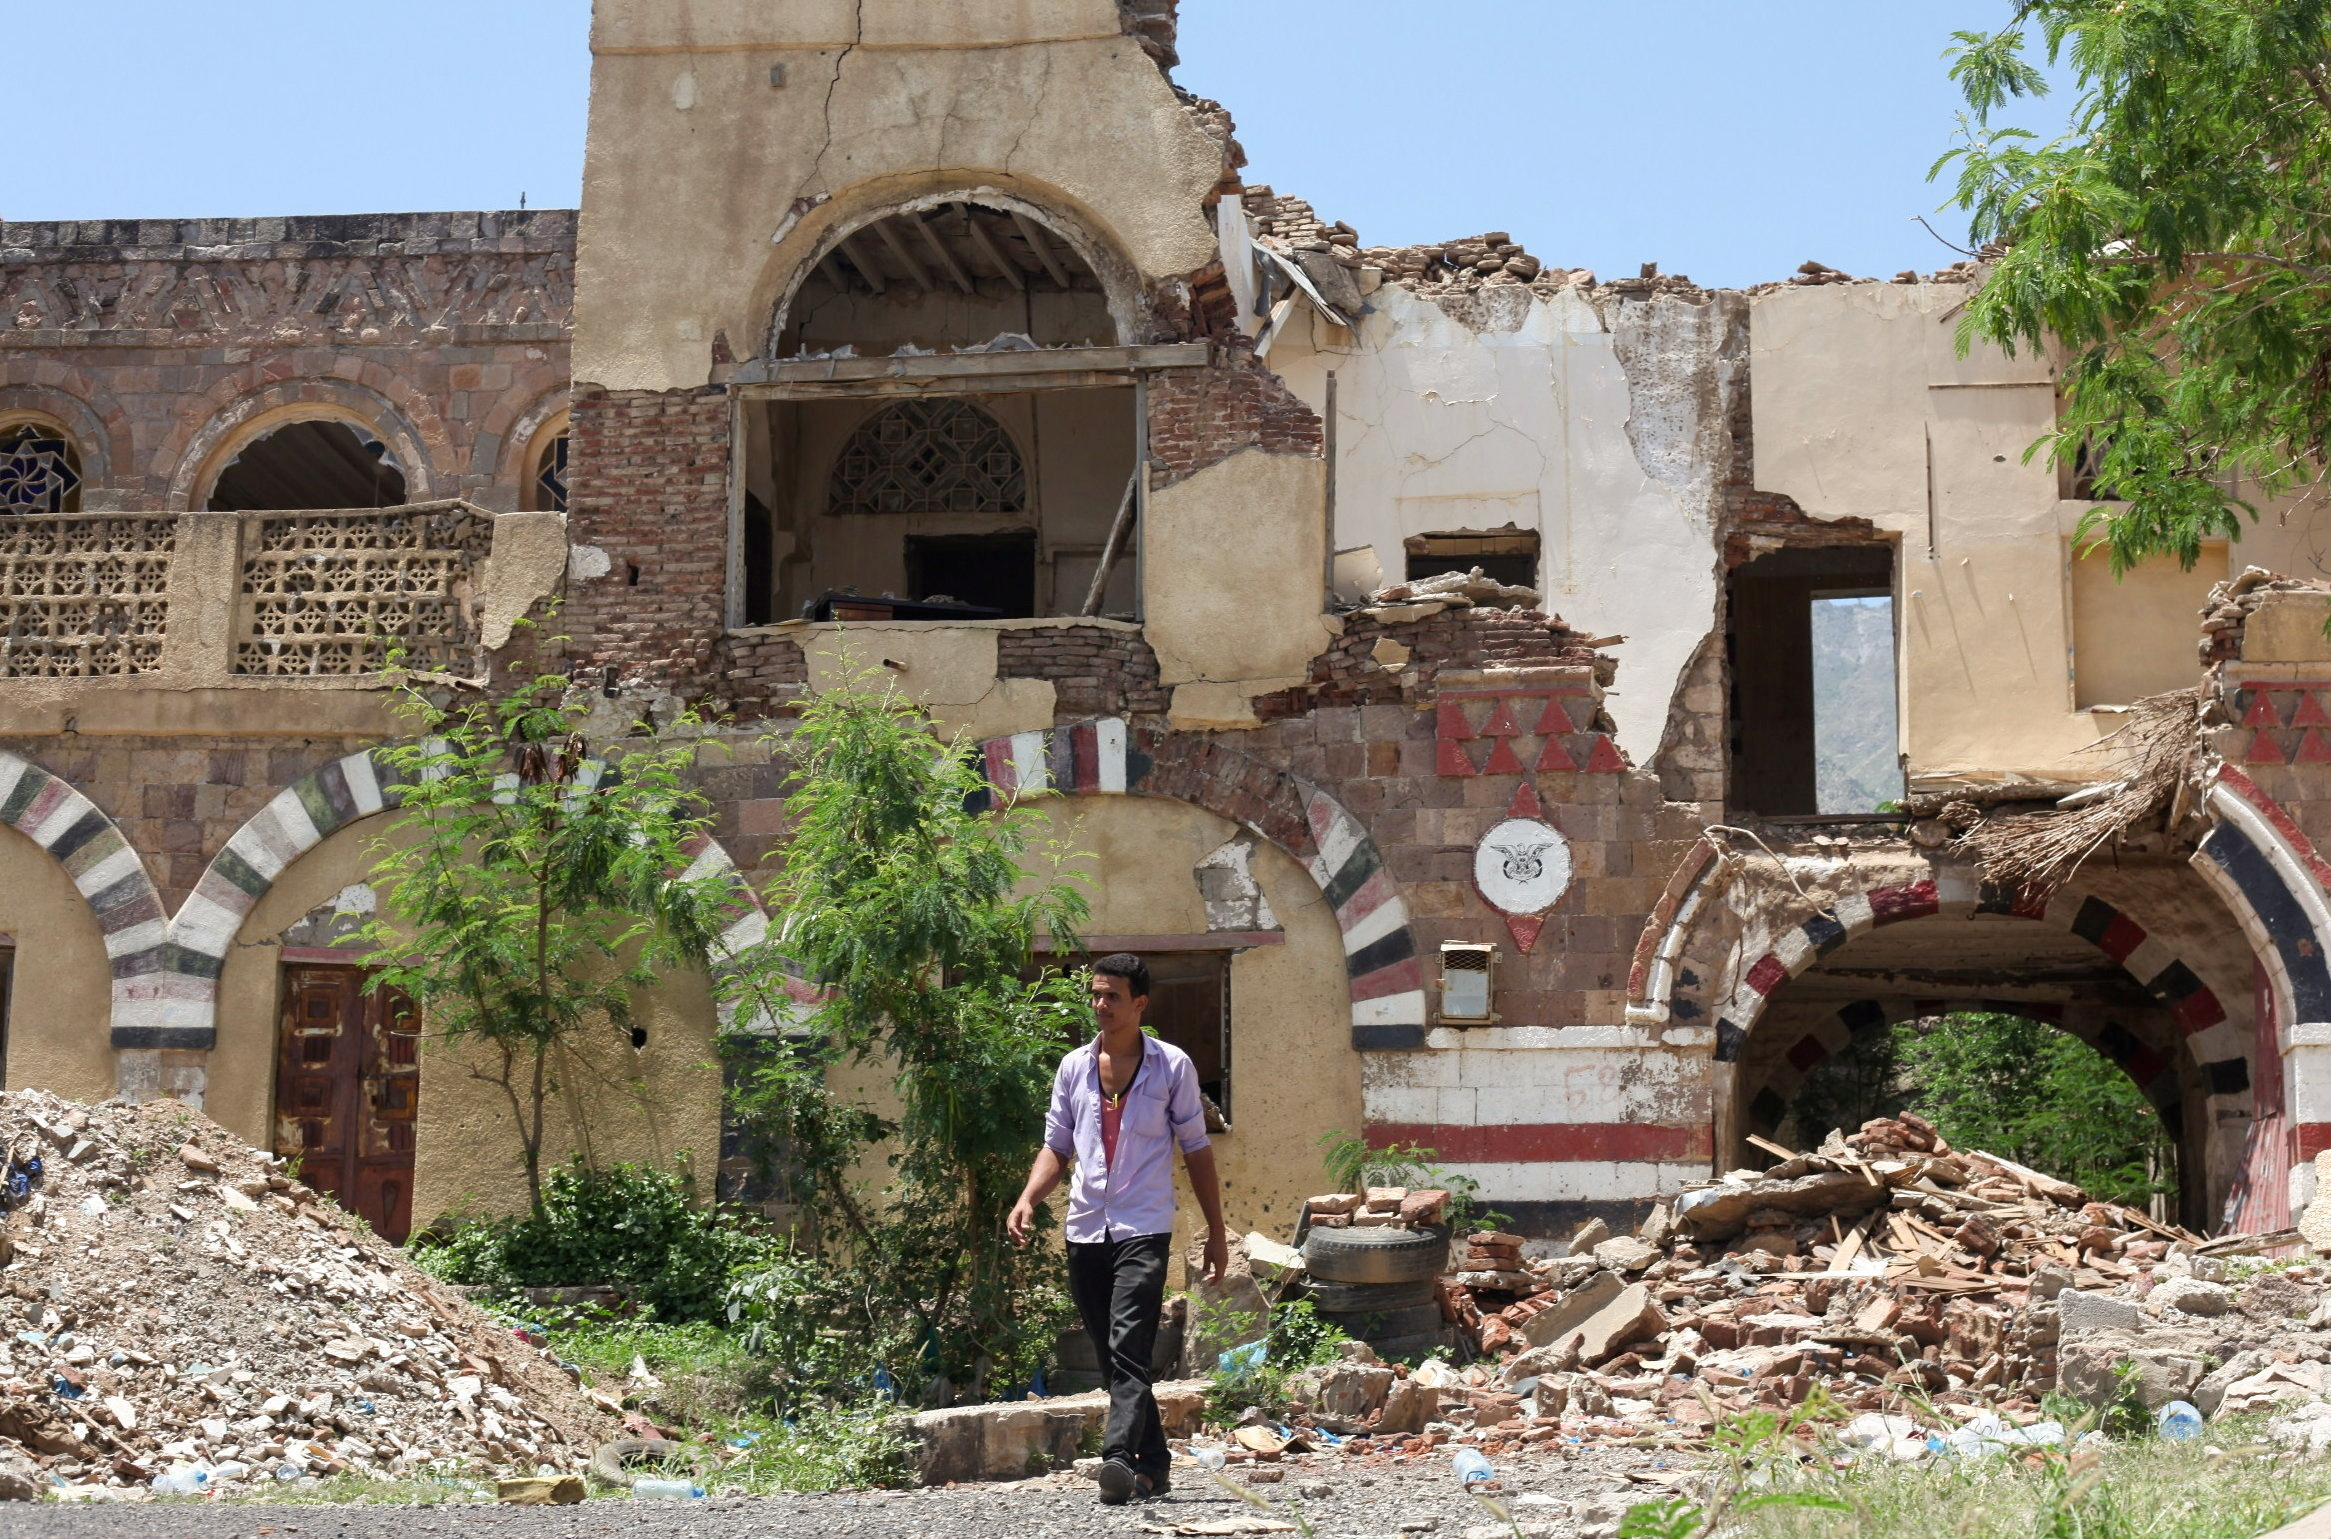 A worker walks past the National Museum in the southwestern city of Taiz, Yemen May 26, 2021. Picture taken May 26, 2021. REUTERS/Anees Mahyoub